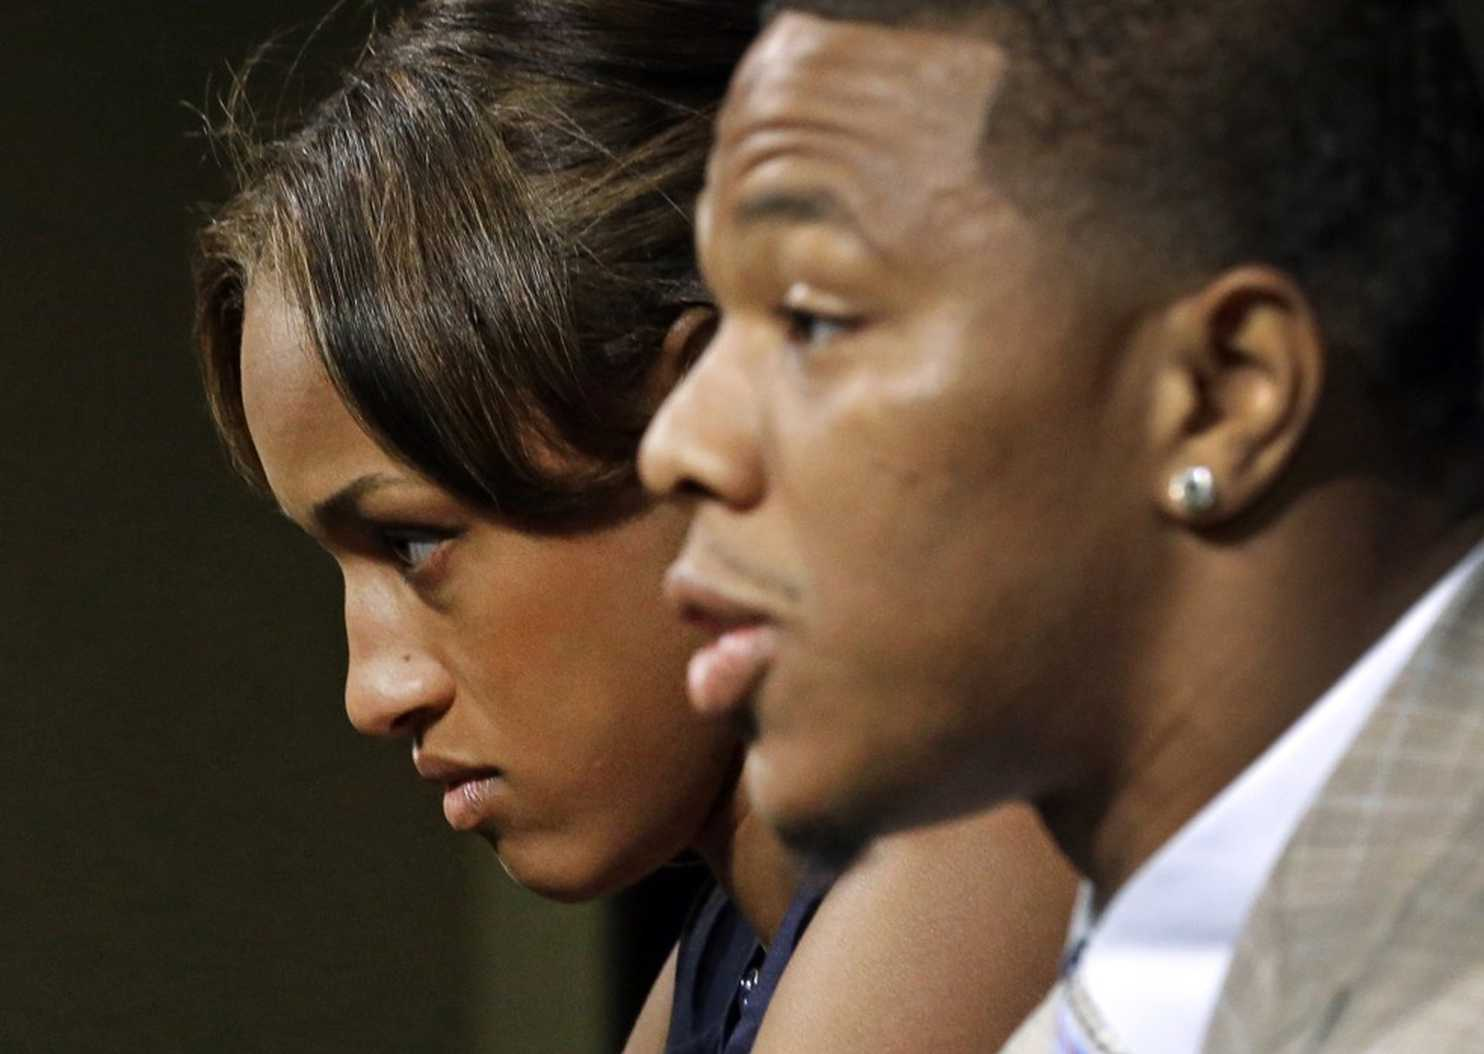 ray rice making himself face of nfl domestic violence education 2017 images